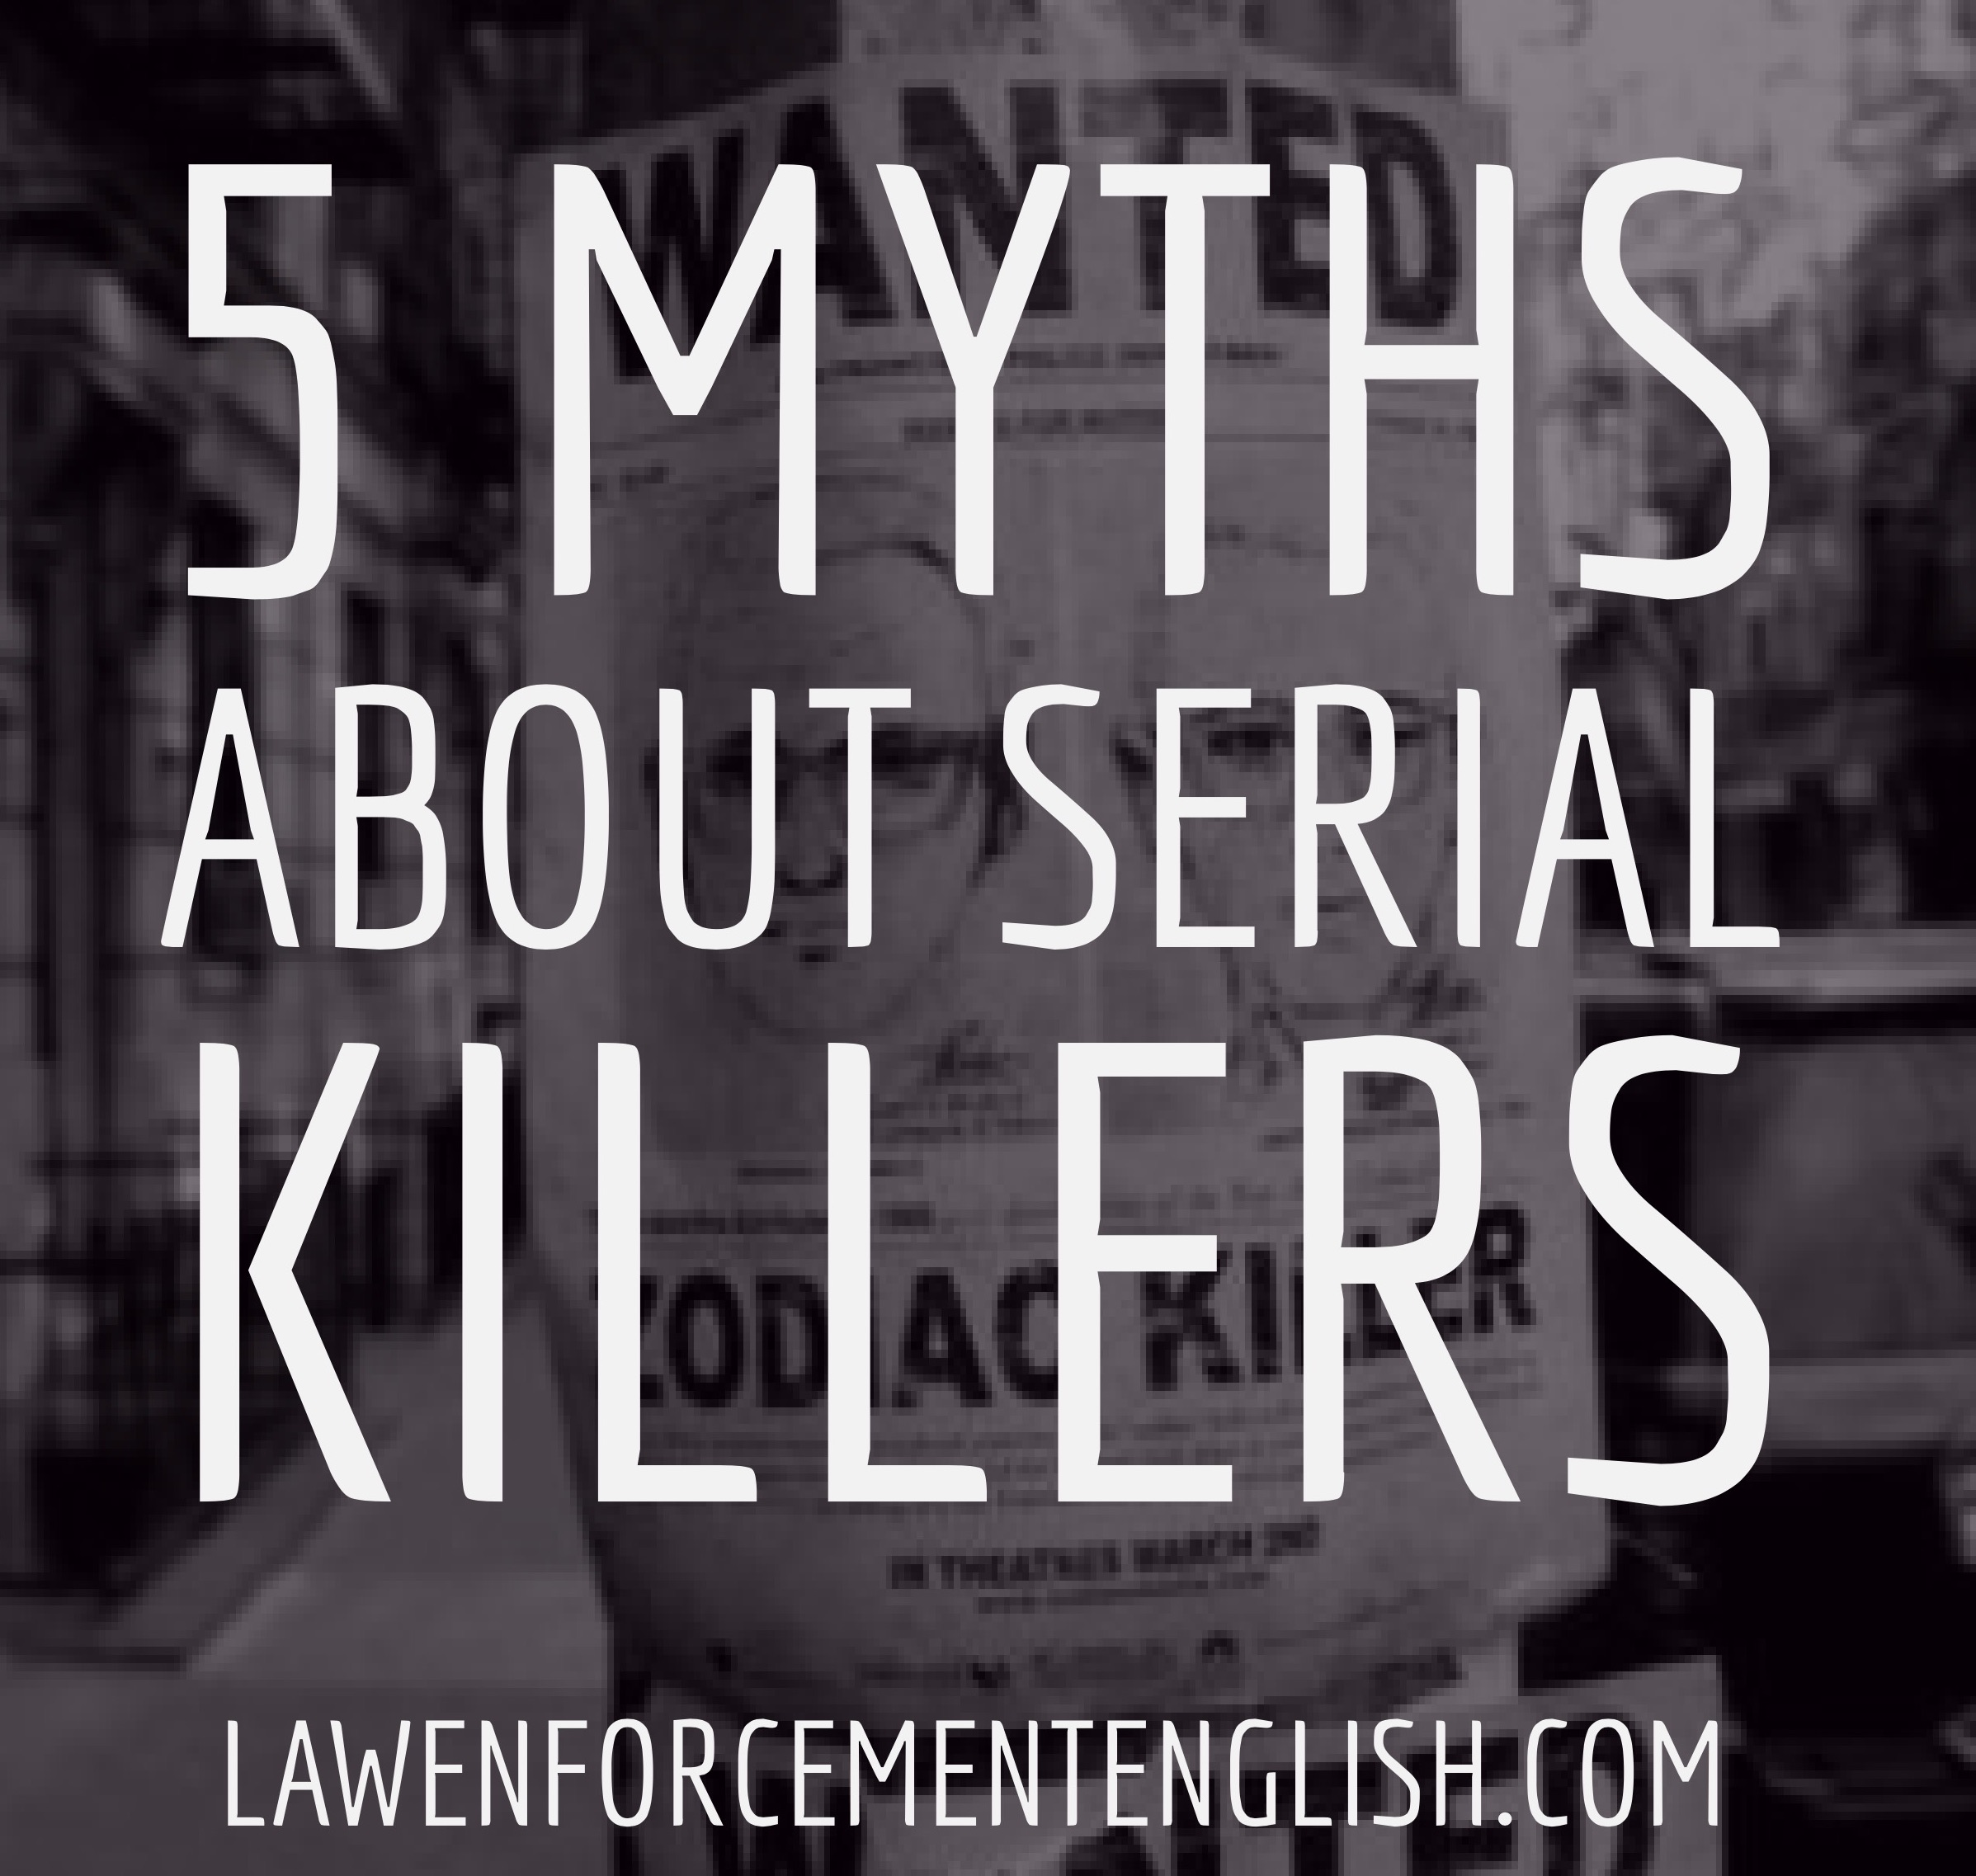 NEWSLETTER: 5 Myths about Serial Killers and Present Simple